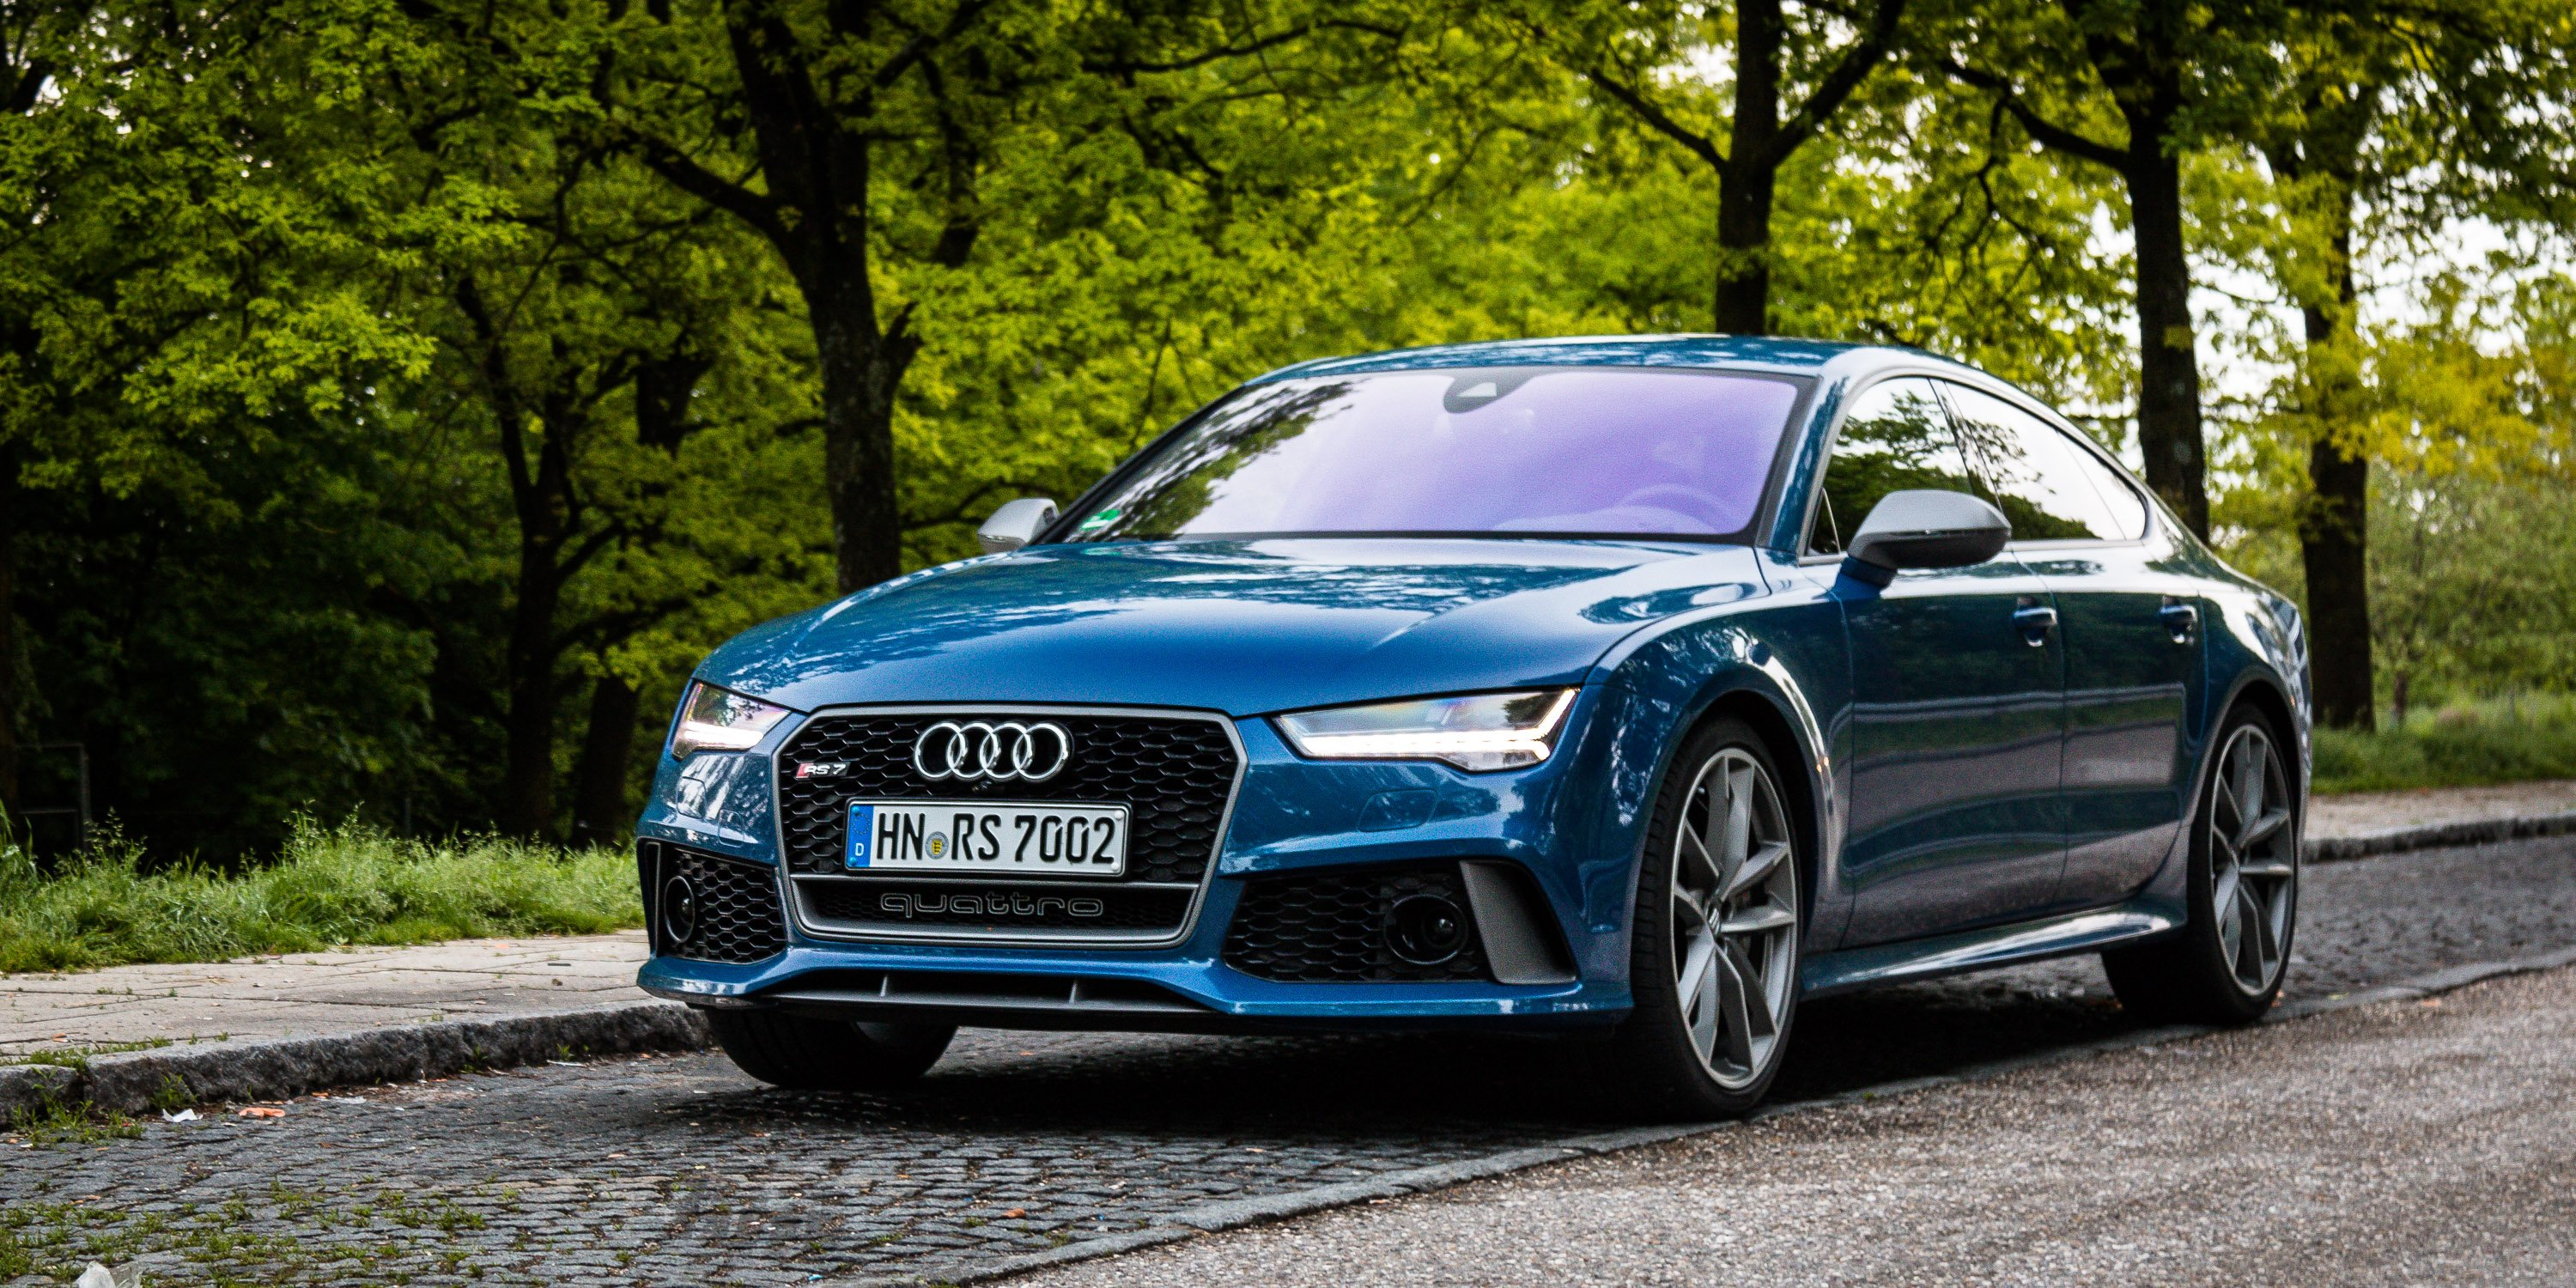 2016 Audi Q5 >> 2016 Audi RS7 Sportback Performance Review | CarAdvice